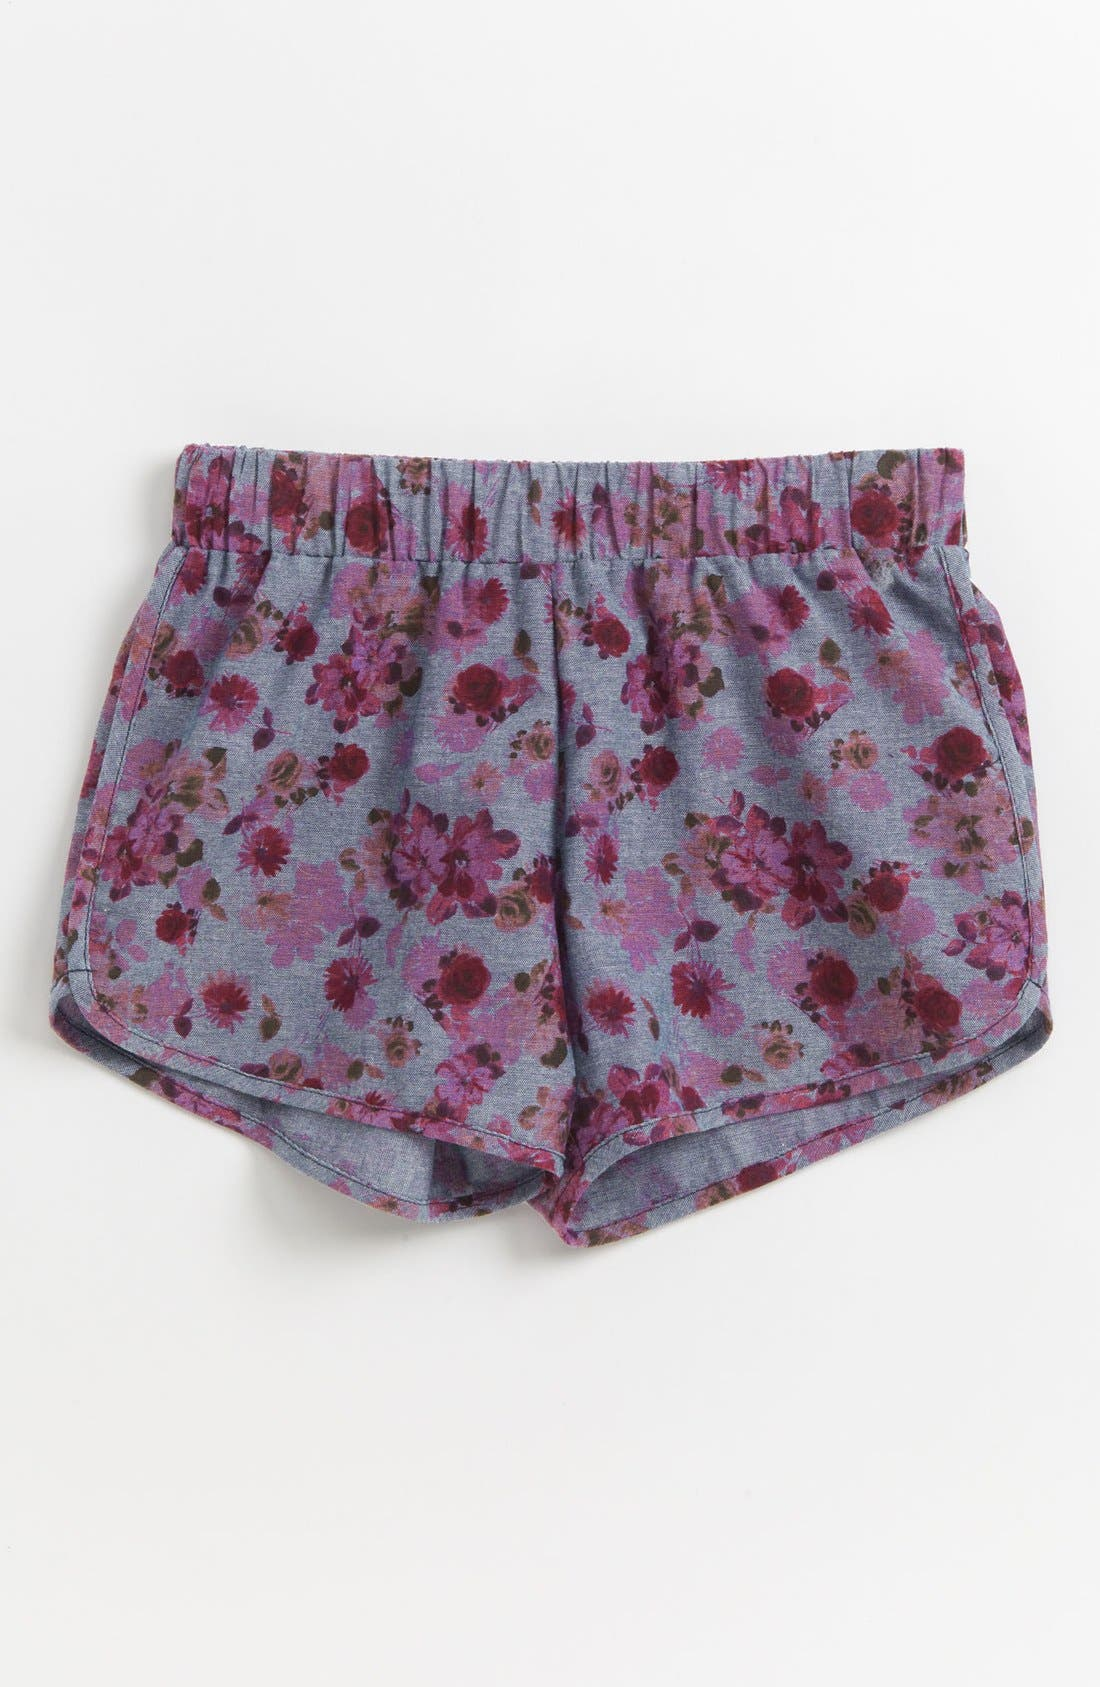 Alternate Image 1 Selected - Mia Chica Dolphin Hem Shorts (Big Girls)